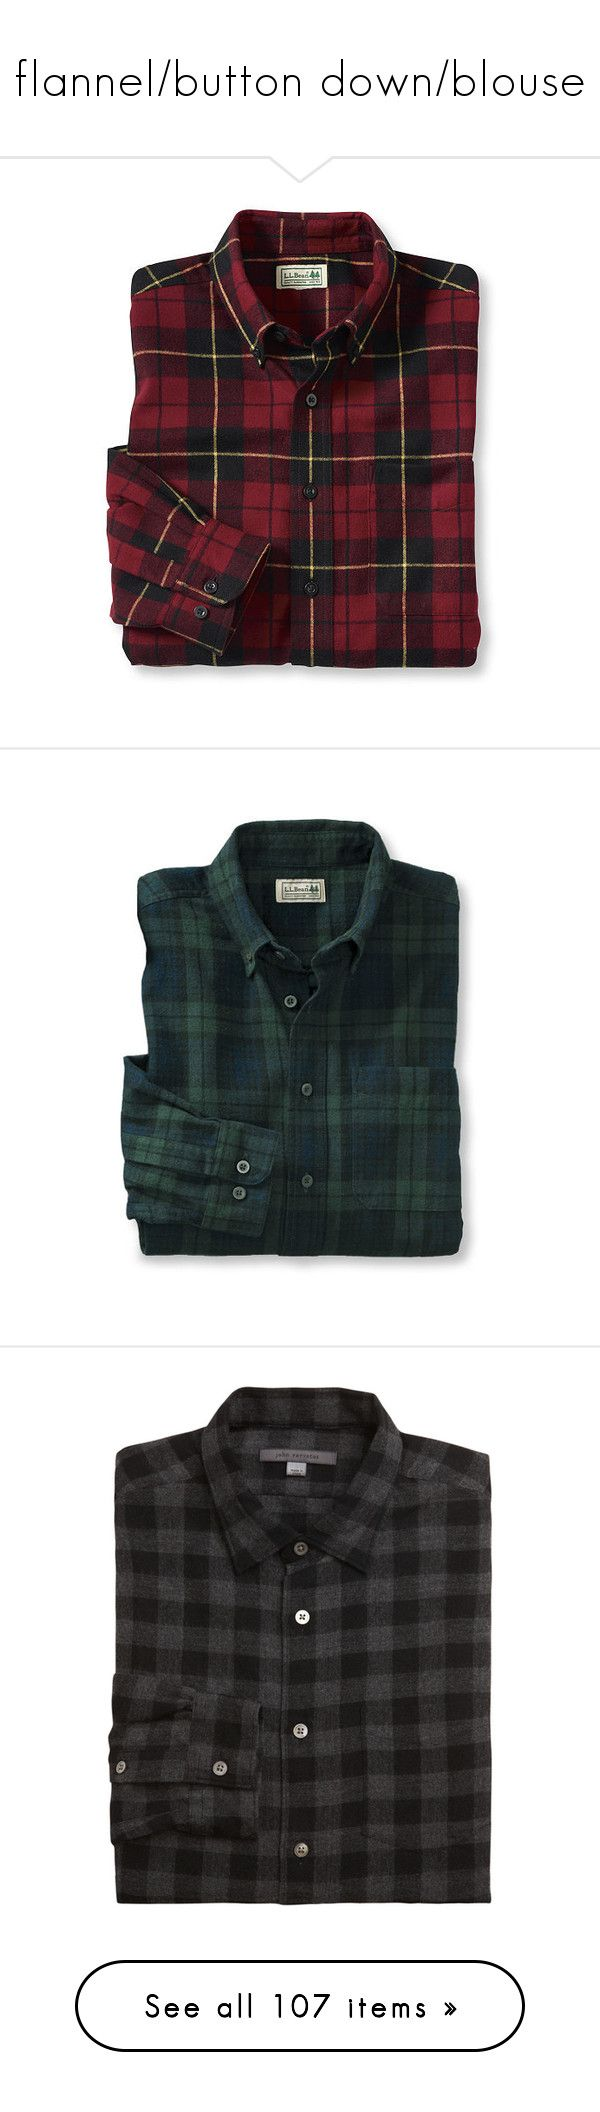 """""""flannel/button down/blouse"""" by red-foxess-and-wolf ❤ liked on Polyvore featuring tops, shirts, flannels, blouses, plaid top, tartan plaid shirt, tartan shirt, tartan plaid flannel shirt, flannel top and plaid shirts"""